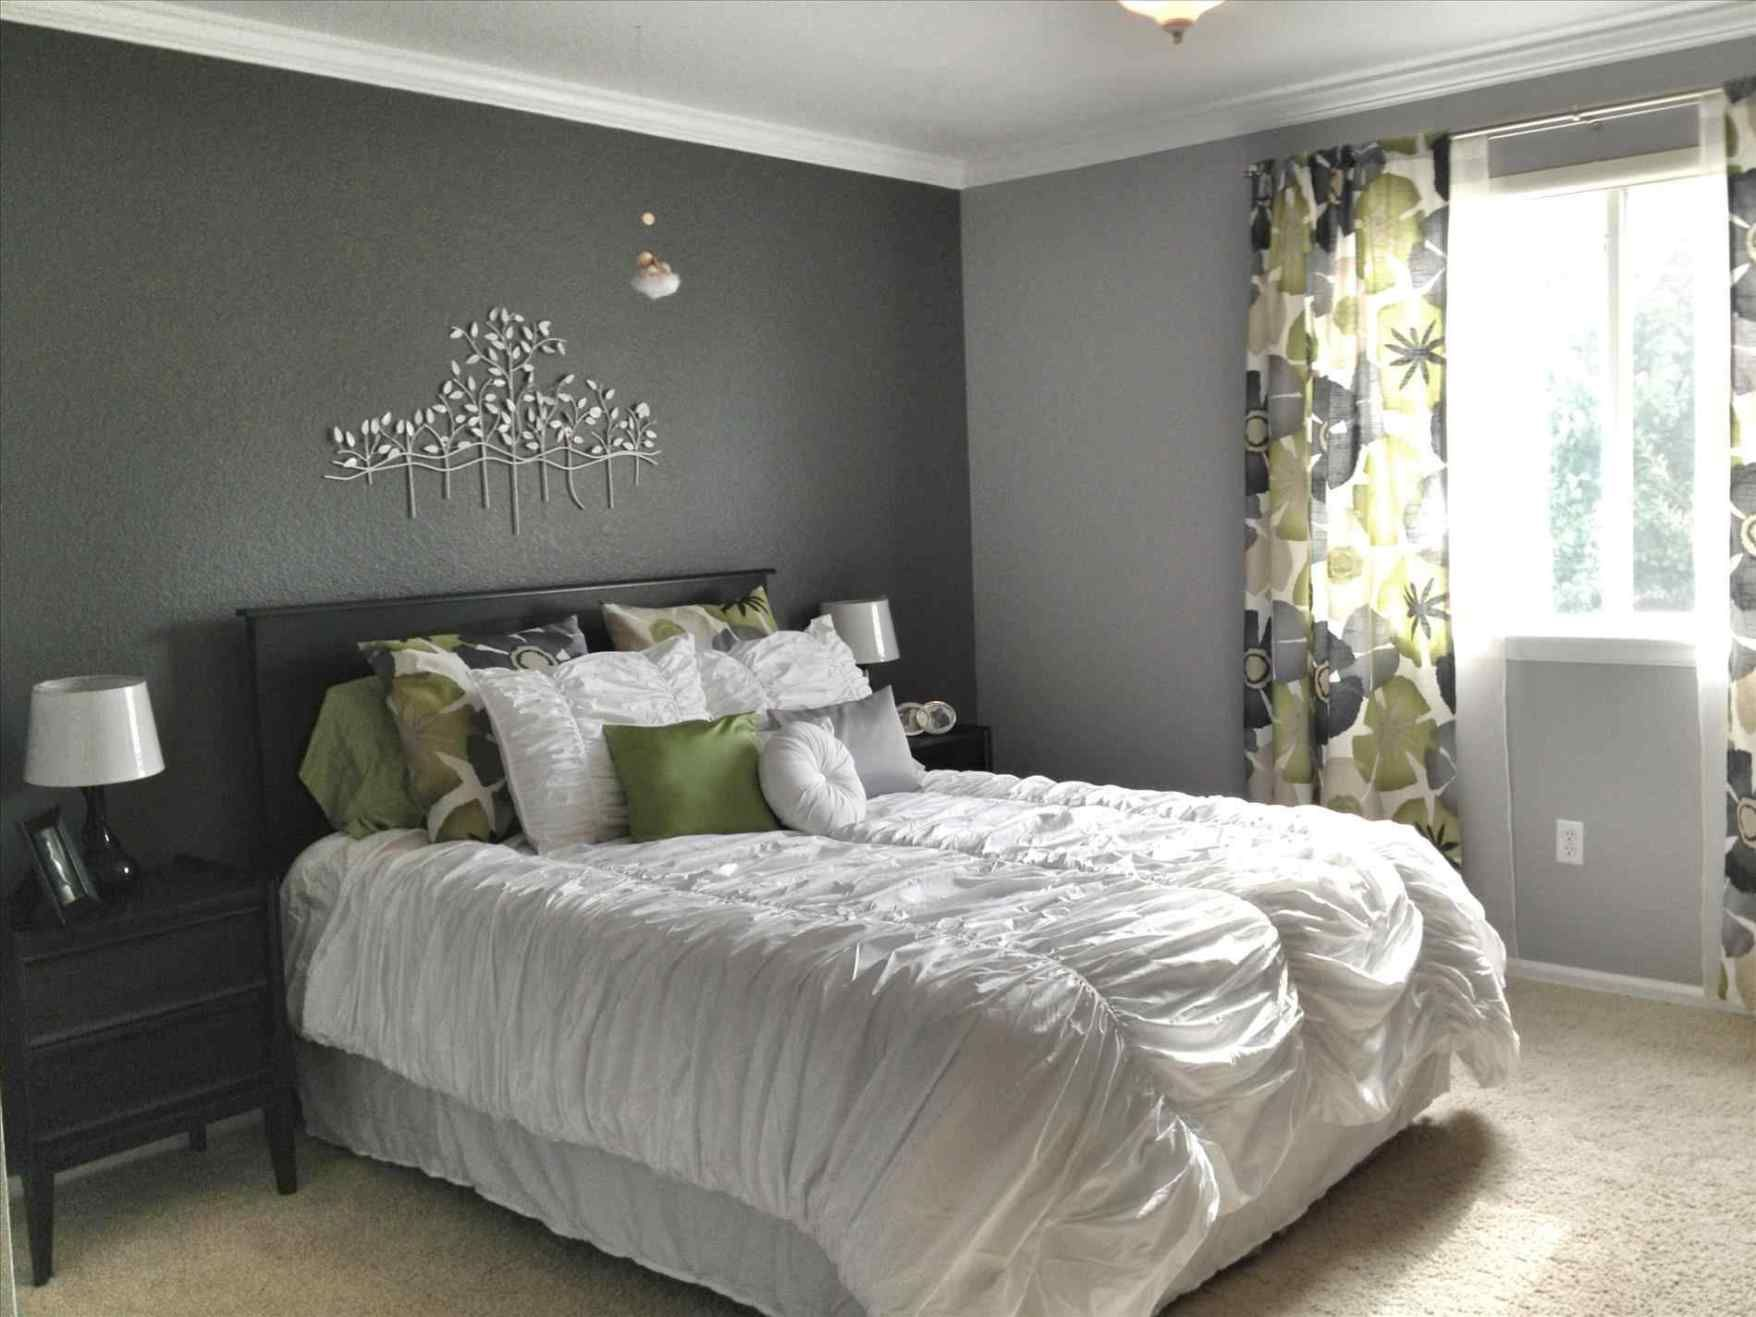 Best And Wonderful Bedding Decor Ideas For Grey Walls Gray Accent Wall Bedroom Master Bedroom Wall Decor Grey Bedroom Design